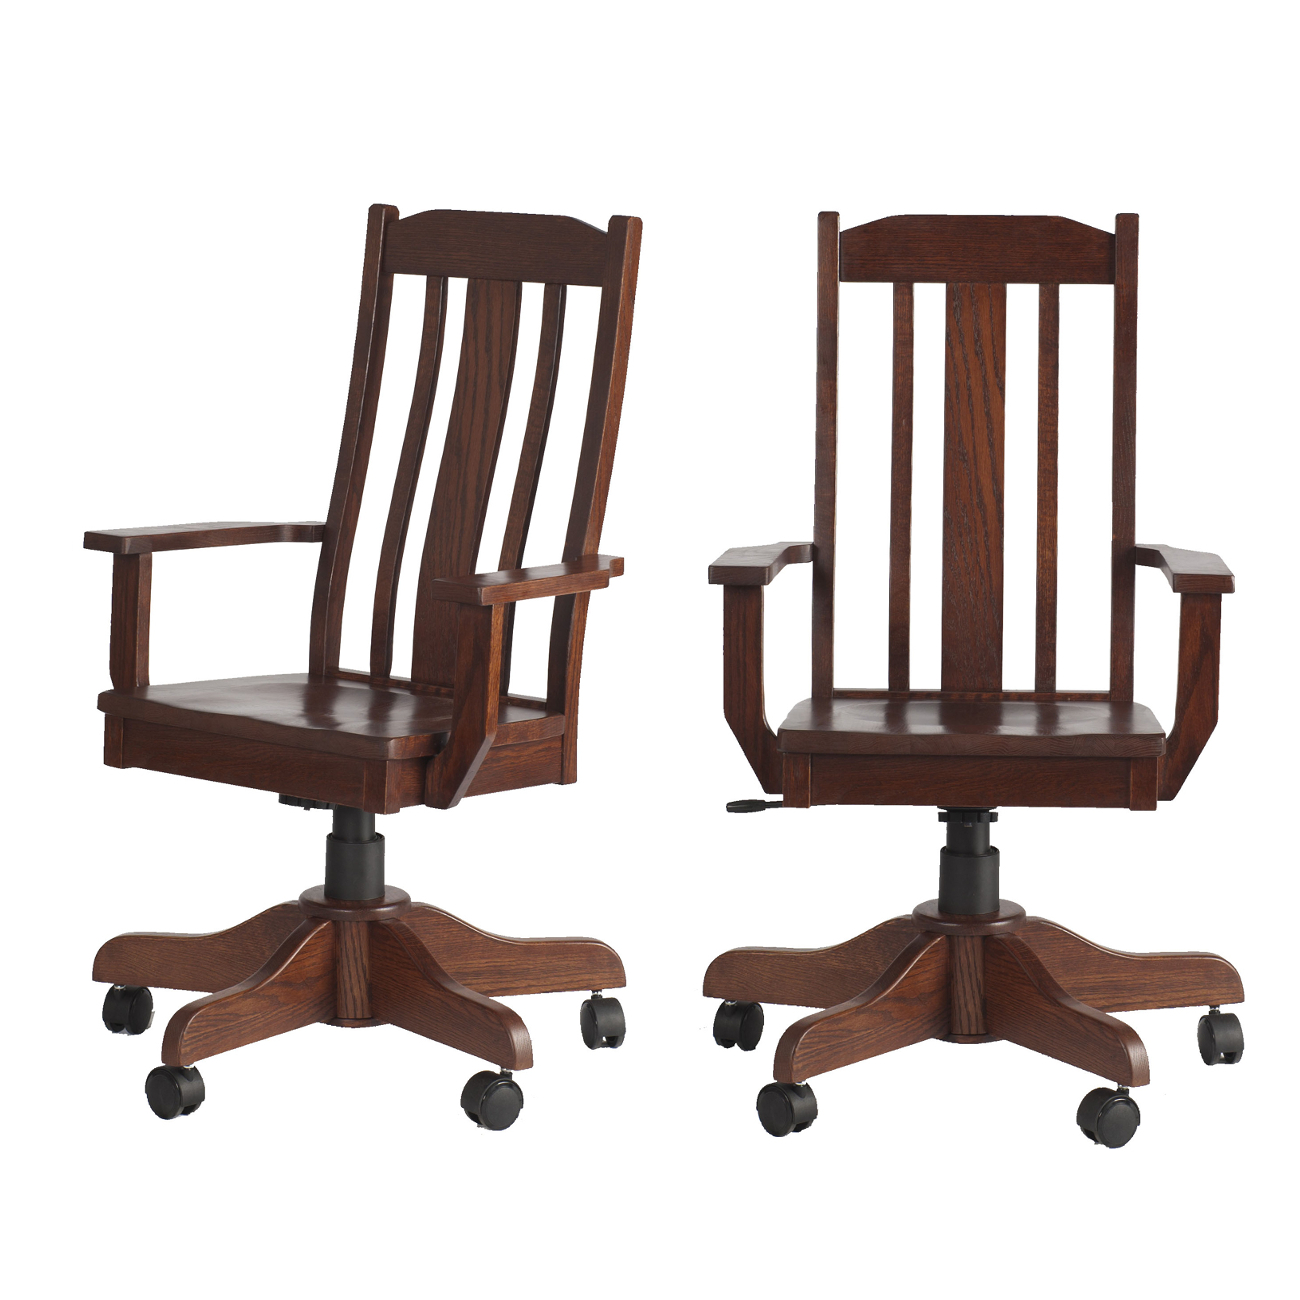 Plains Mission Office Chairs | Office Chair in the Plains Mission Style